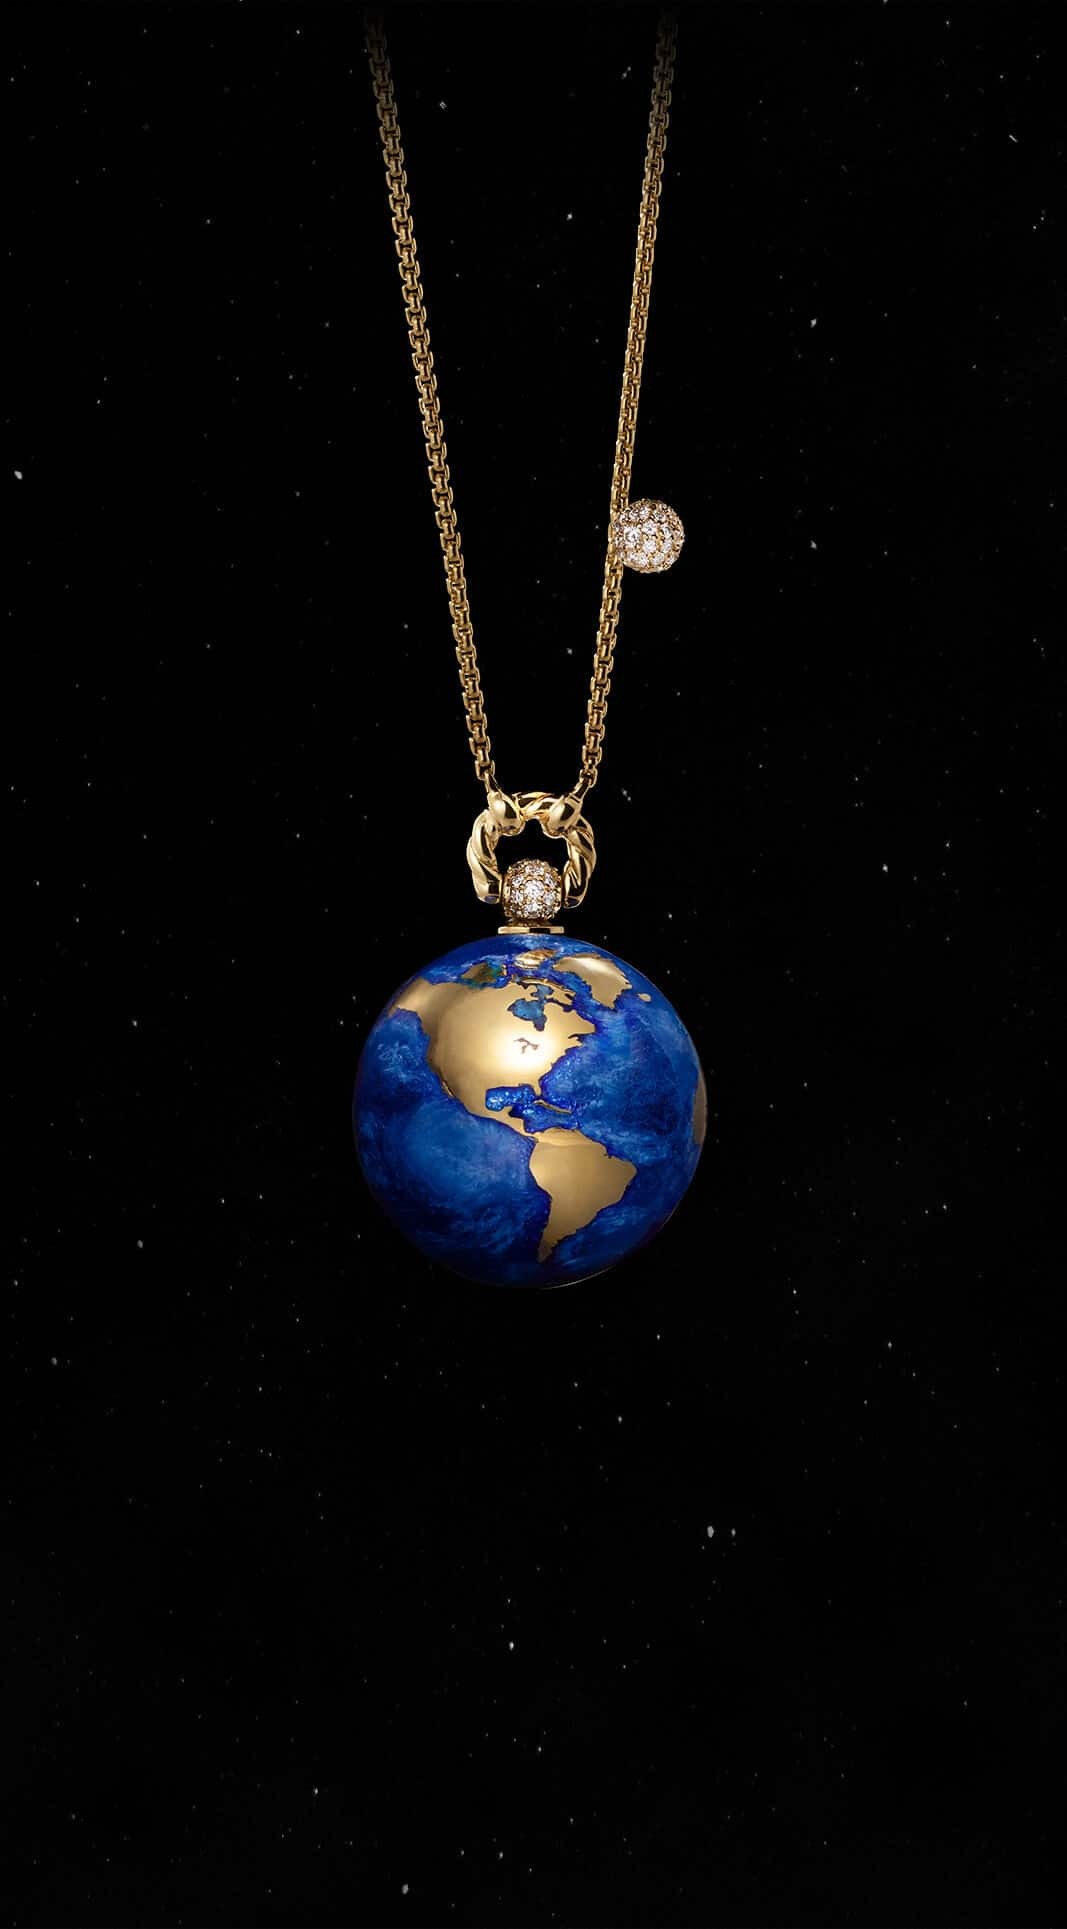 A color photo shows the David Yurman Solari Planet Earth pendant necklace in front of a starry night sky. The pendant is crafted from 18K yellow gold with silver foil, vitreous enamel and white diamonds.